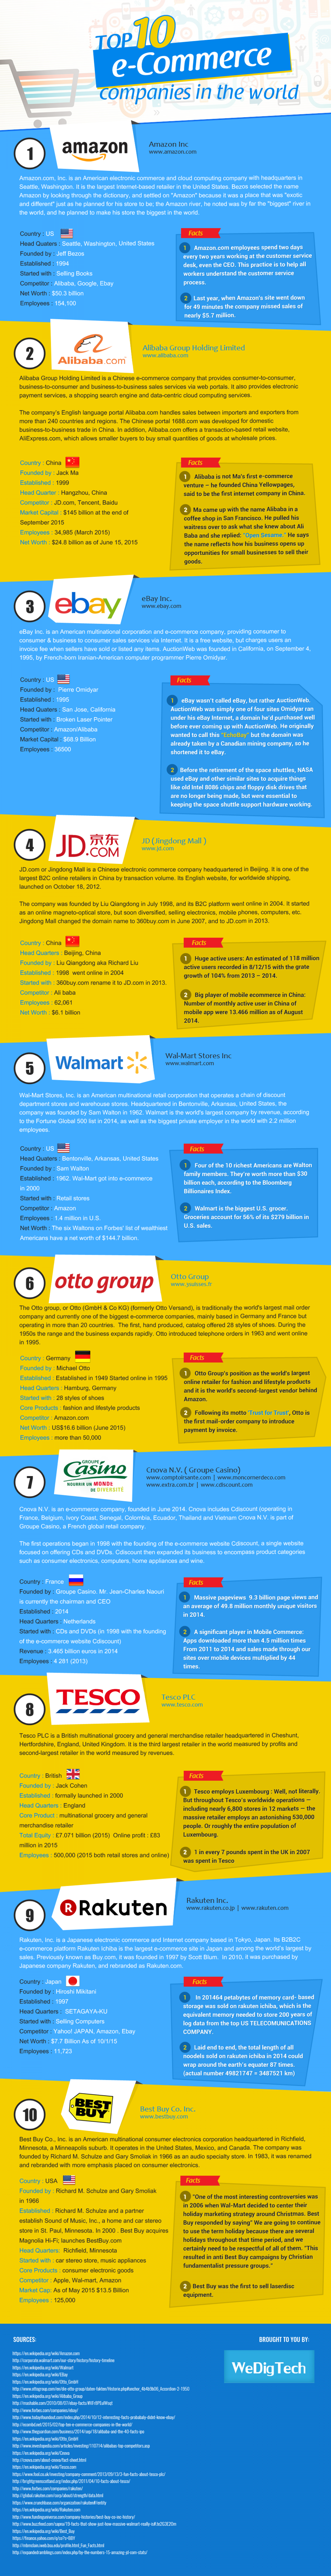 Top 10 e-commerce companies in the world Infographic